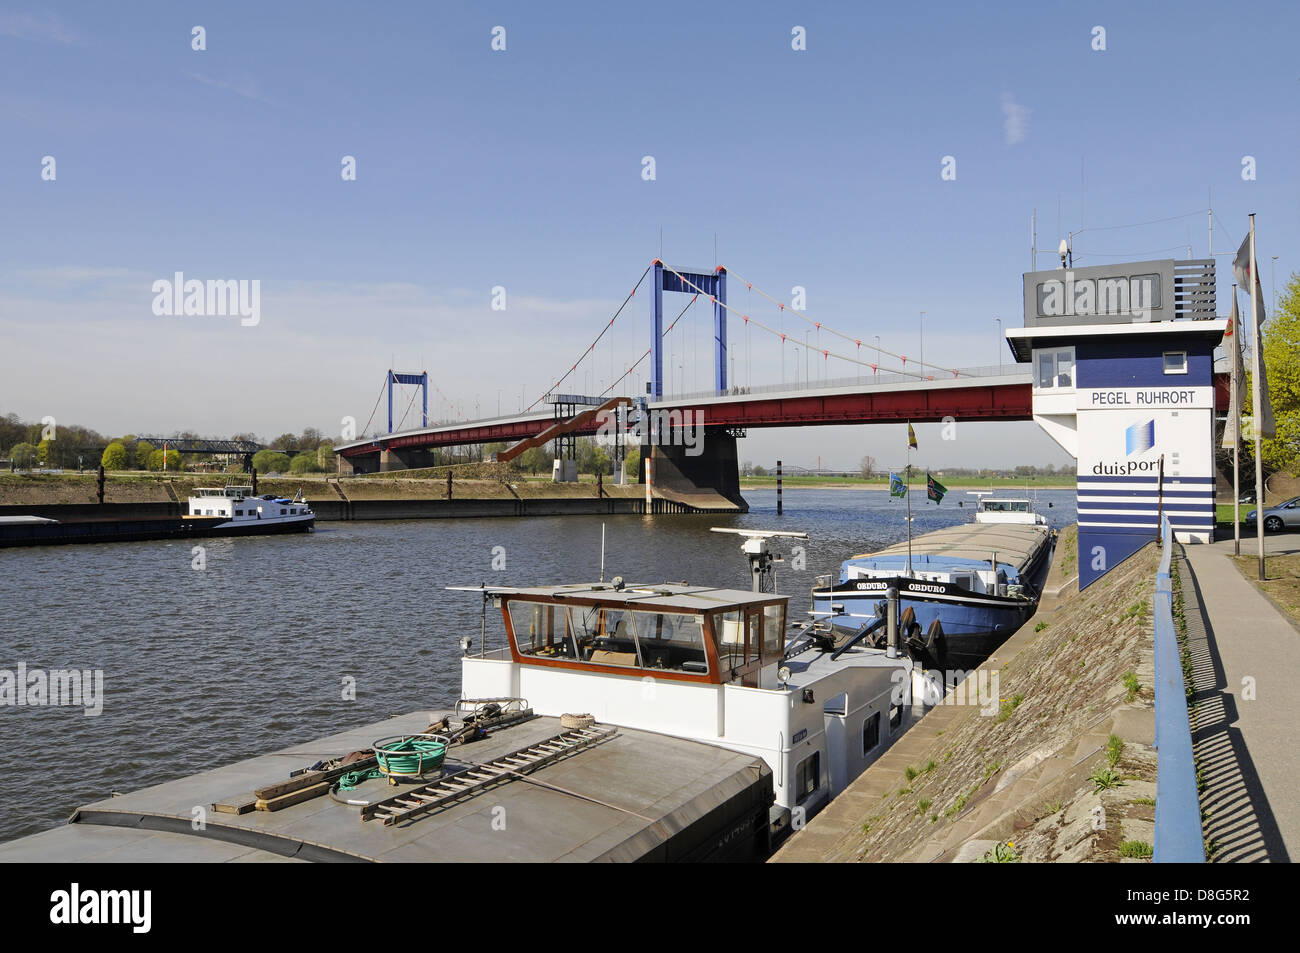 Friedrich-Ebert-Bruecke Rhine bridge - Stock Image